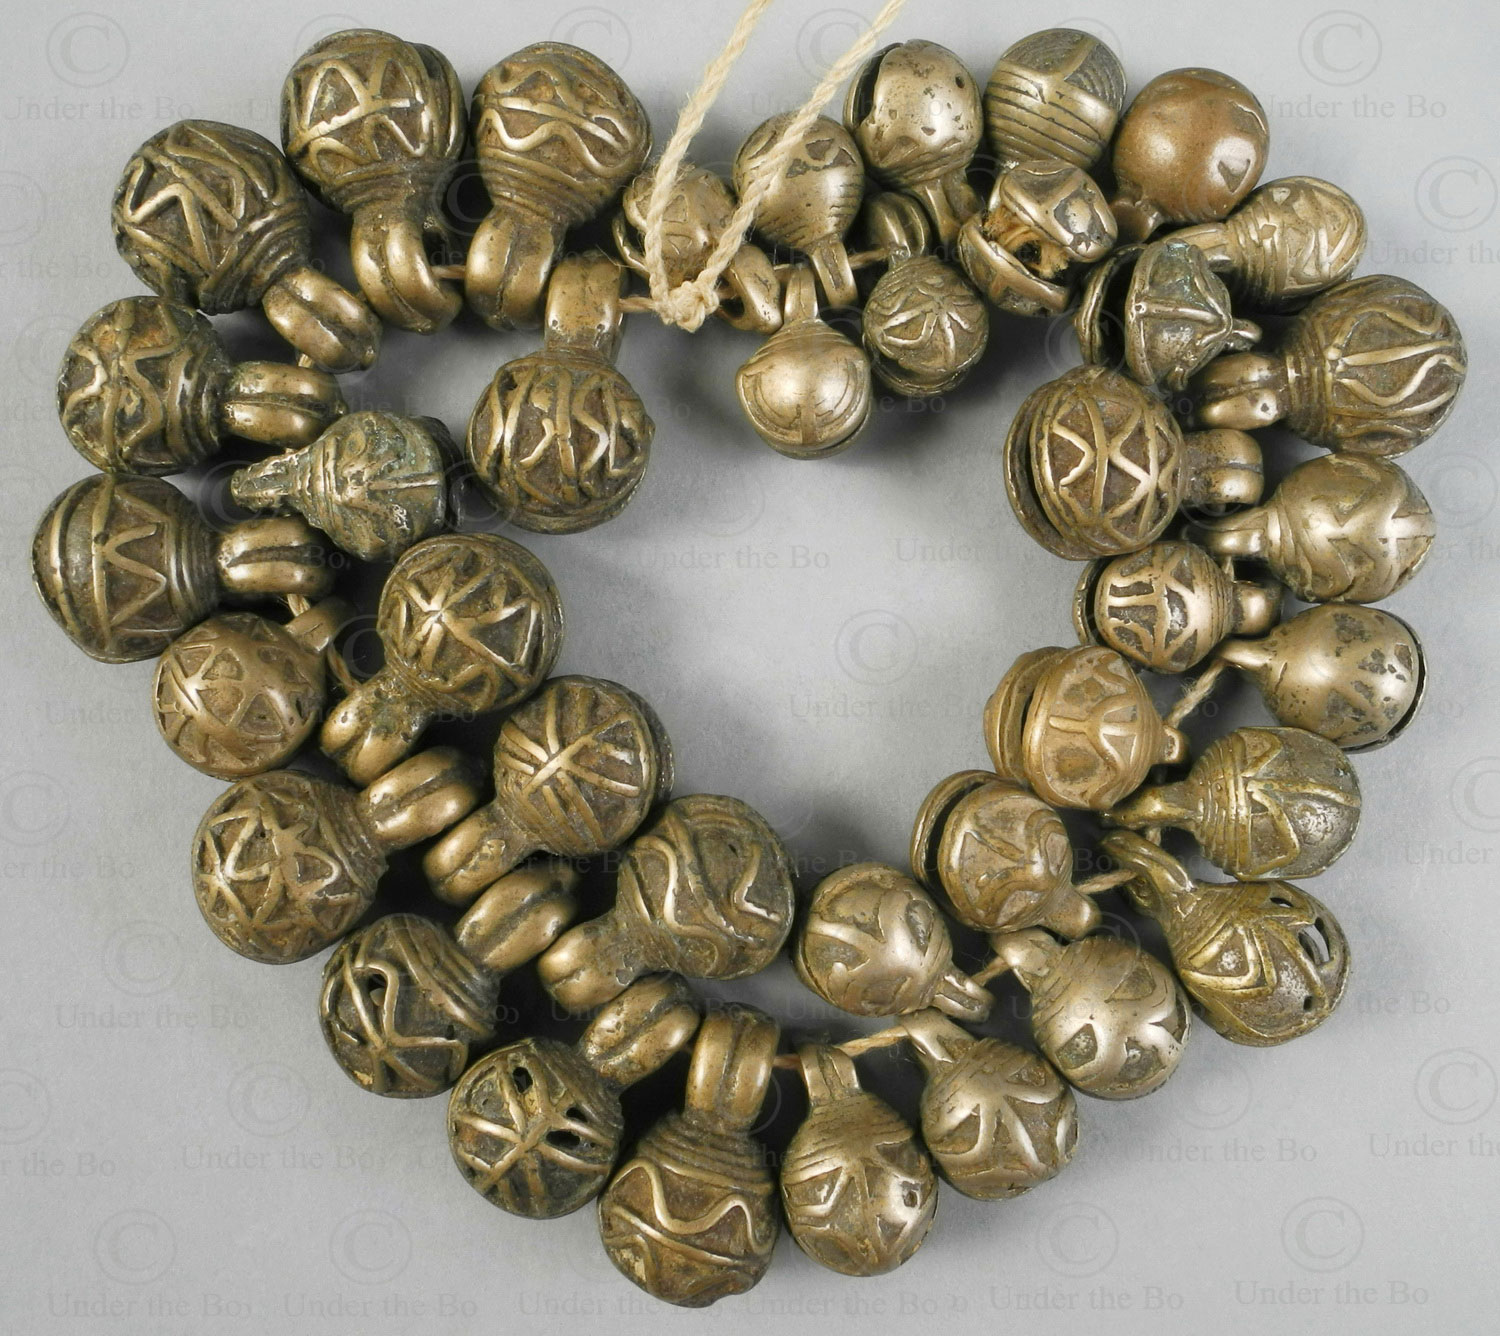 Bronze jingle bells BU553. Chin minority, Western Burma Hills.